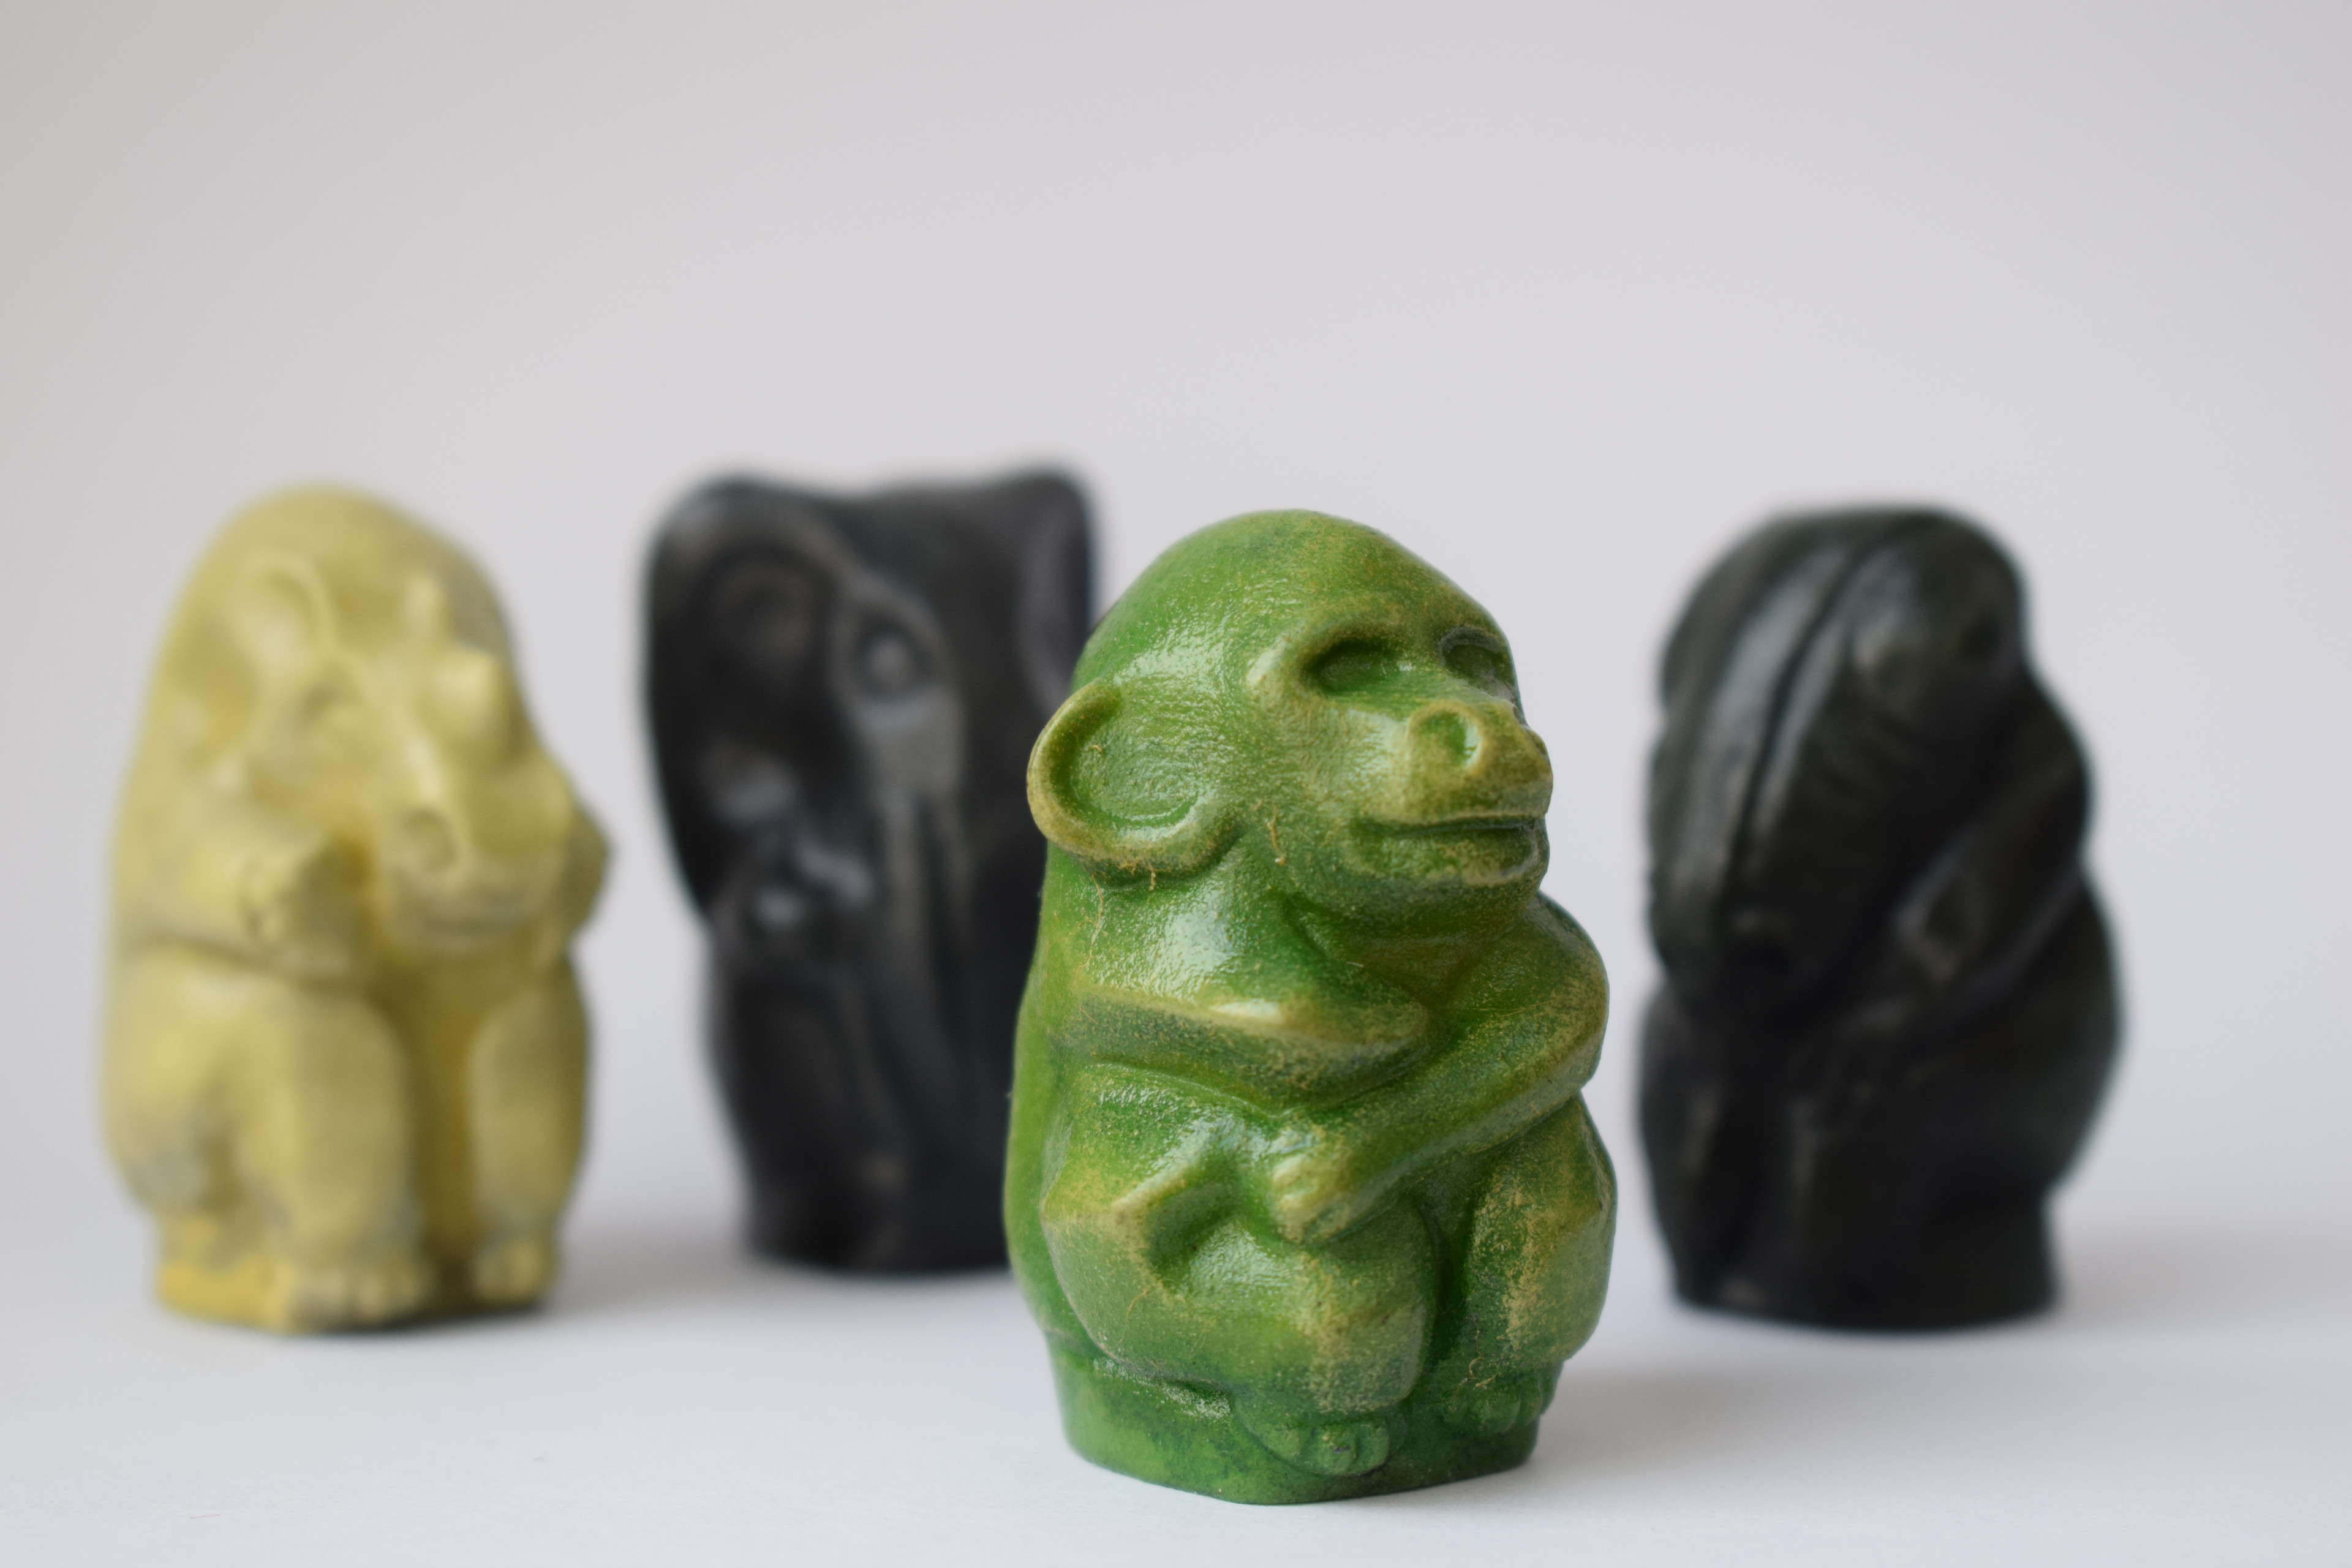 Jumanji game tokens. ZBrush and hand painted 3D print